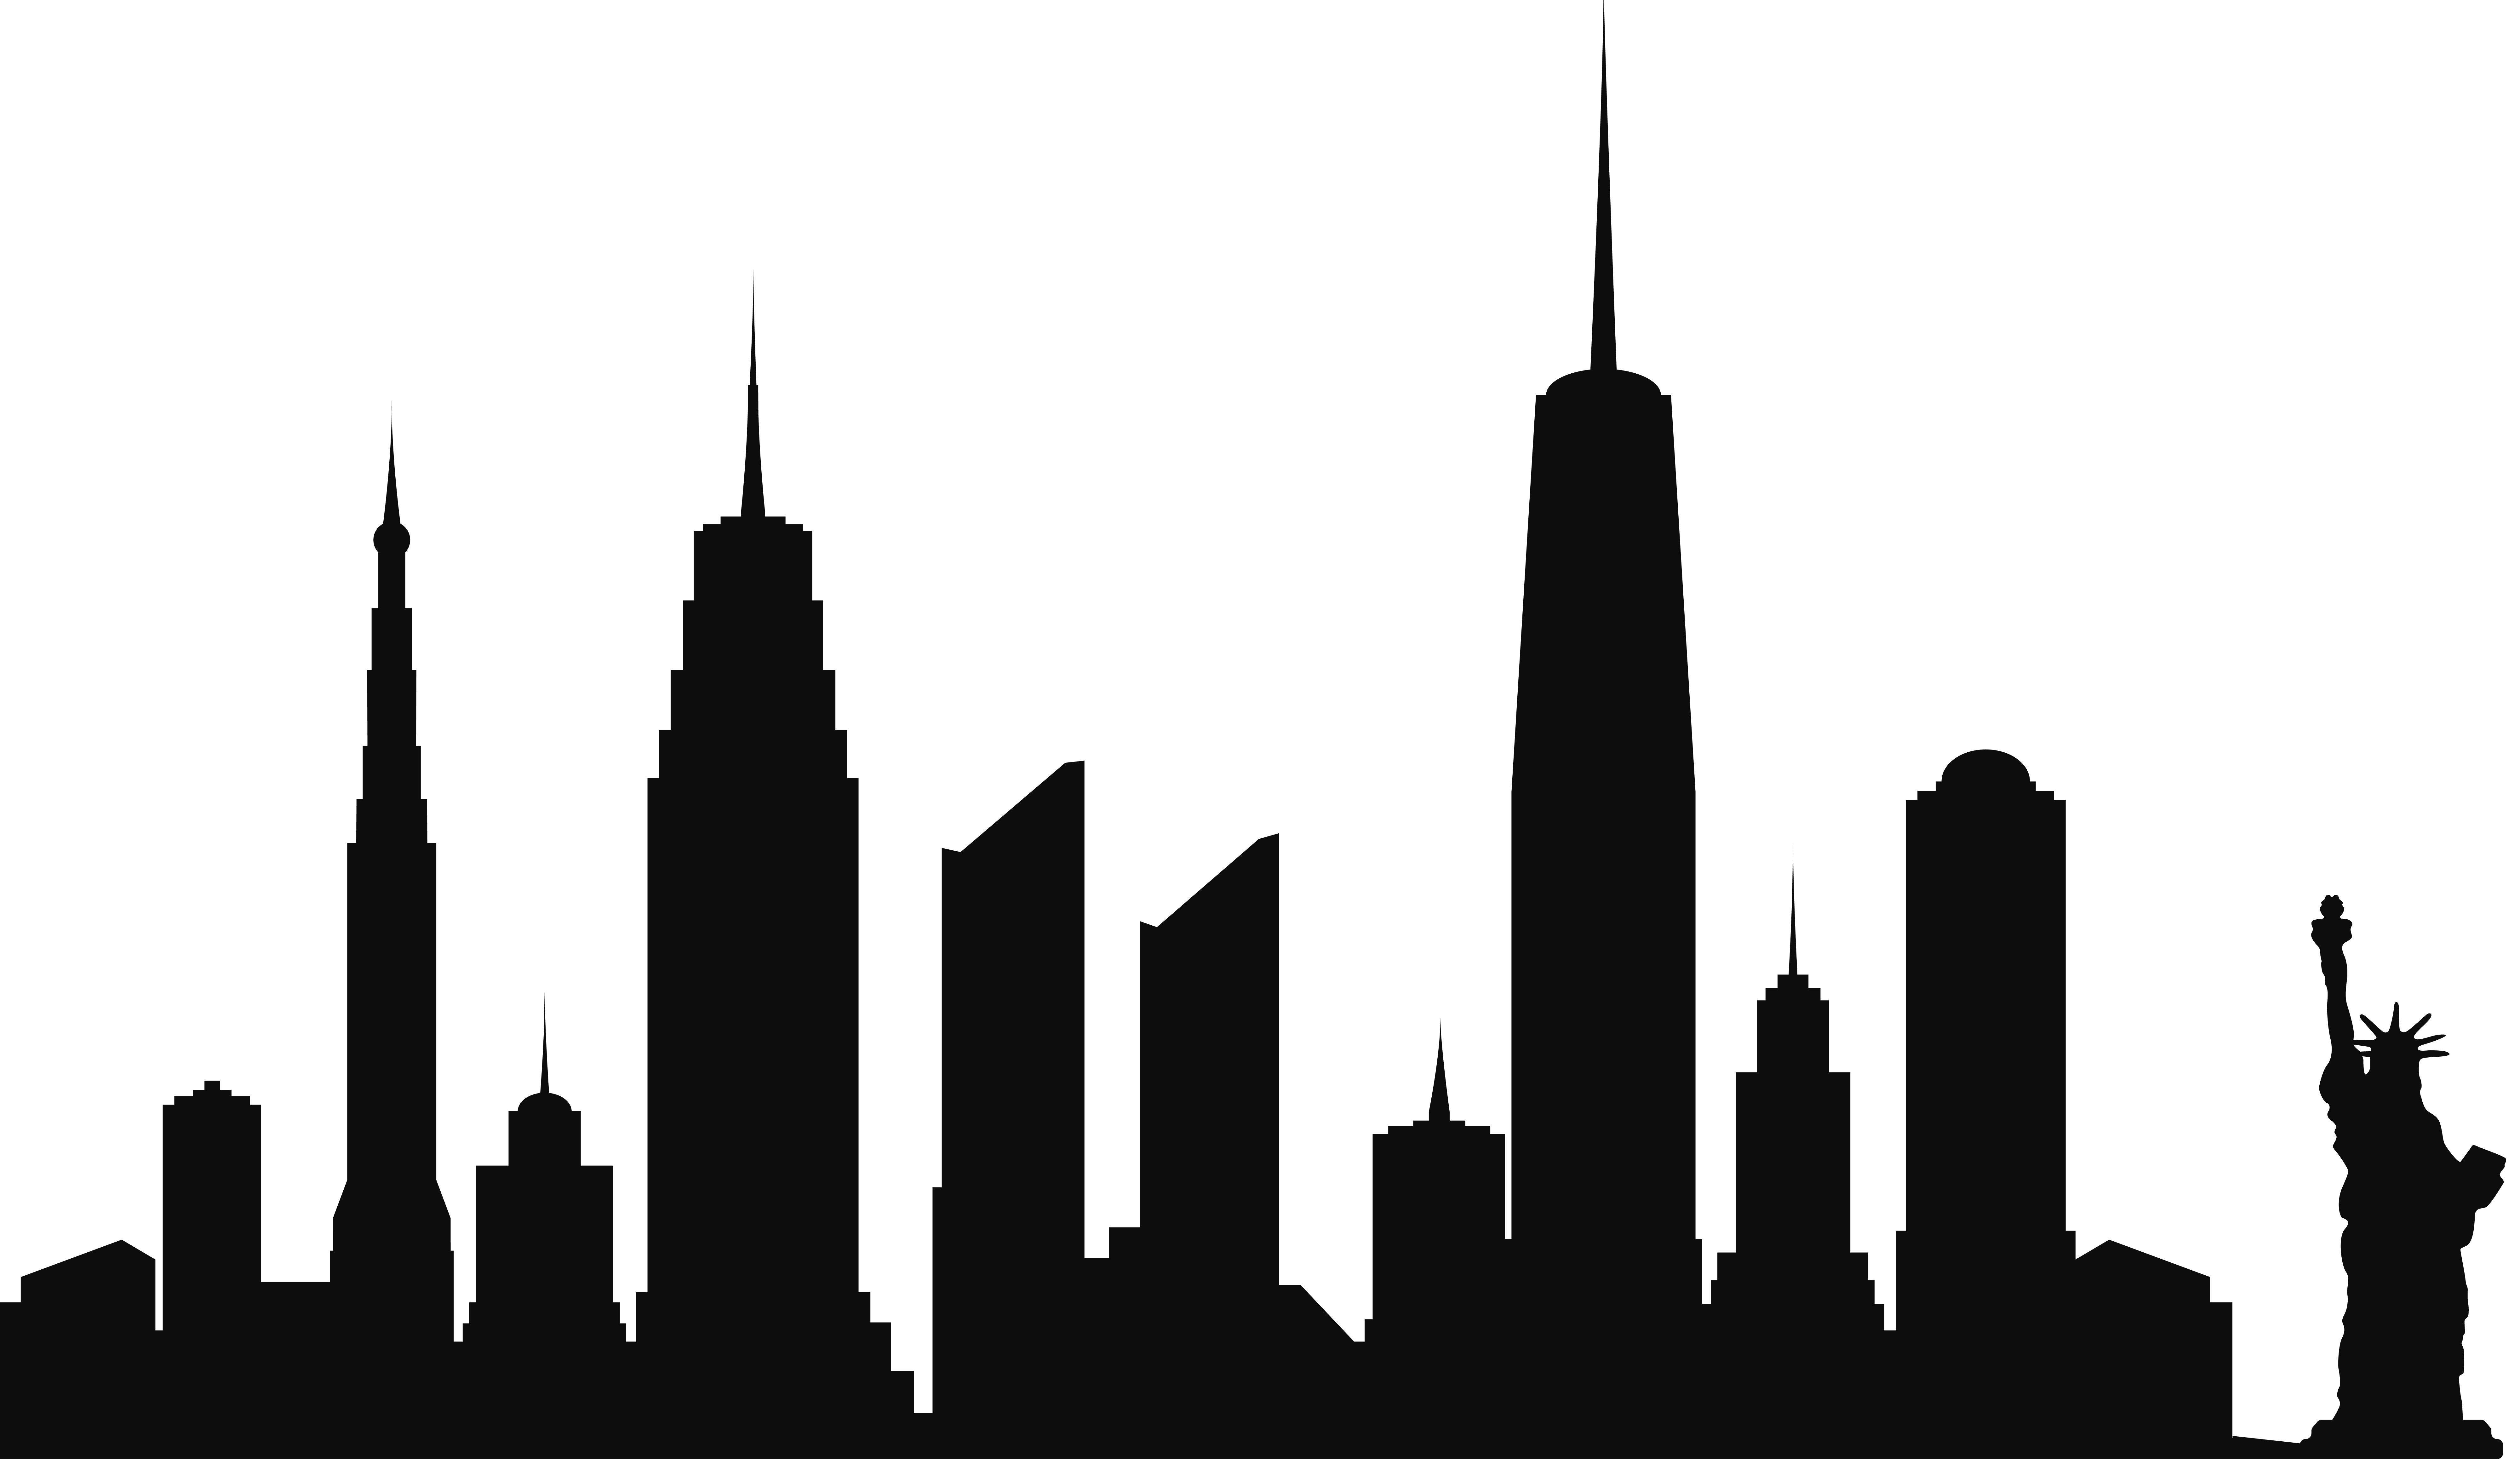 Outline clipart city, Outline city Transparent FREE for download on.